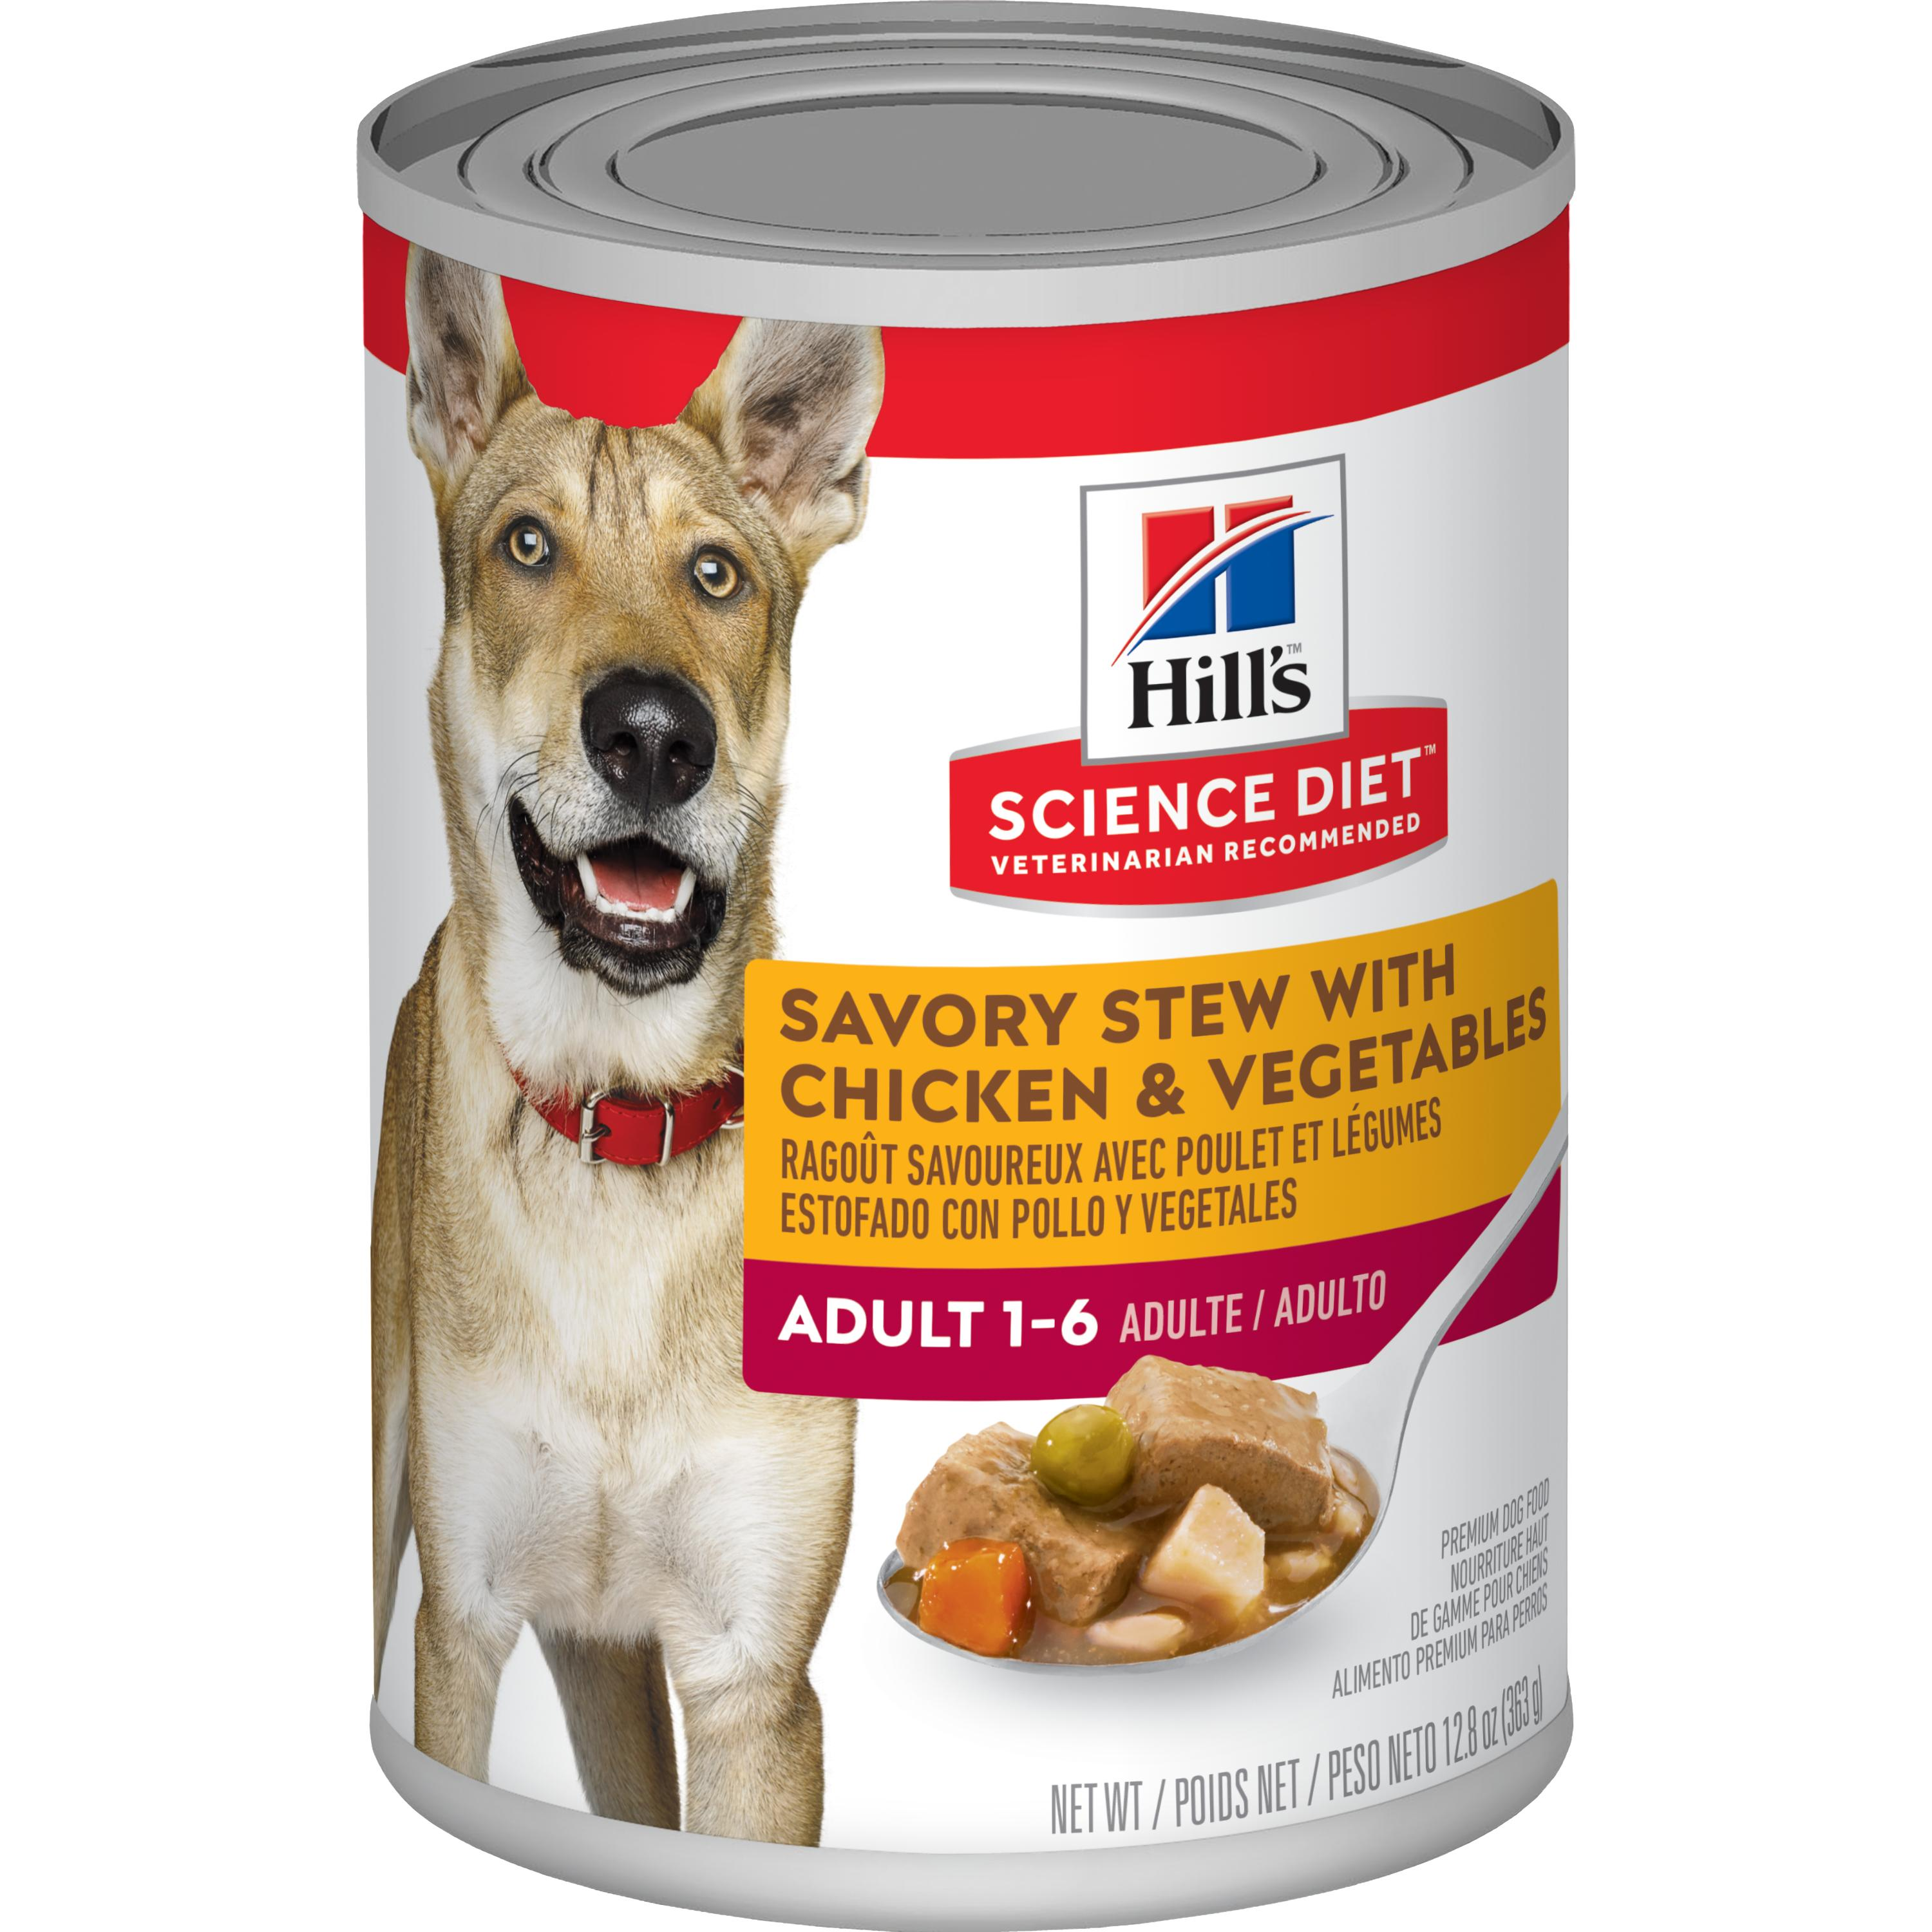 Hill's Science Diet (Spend $20, Get $5) Adult Savory Stew with Chicken & Vegetables Wet Dog Food, 12.8 oz, 12-pack (See description for rebate details)